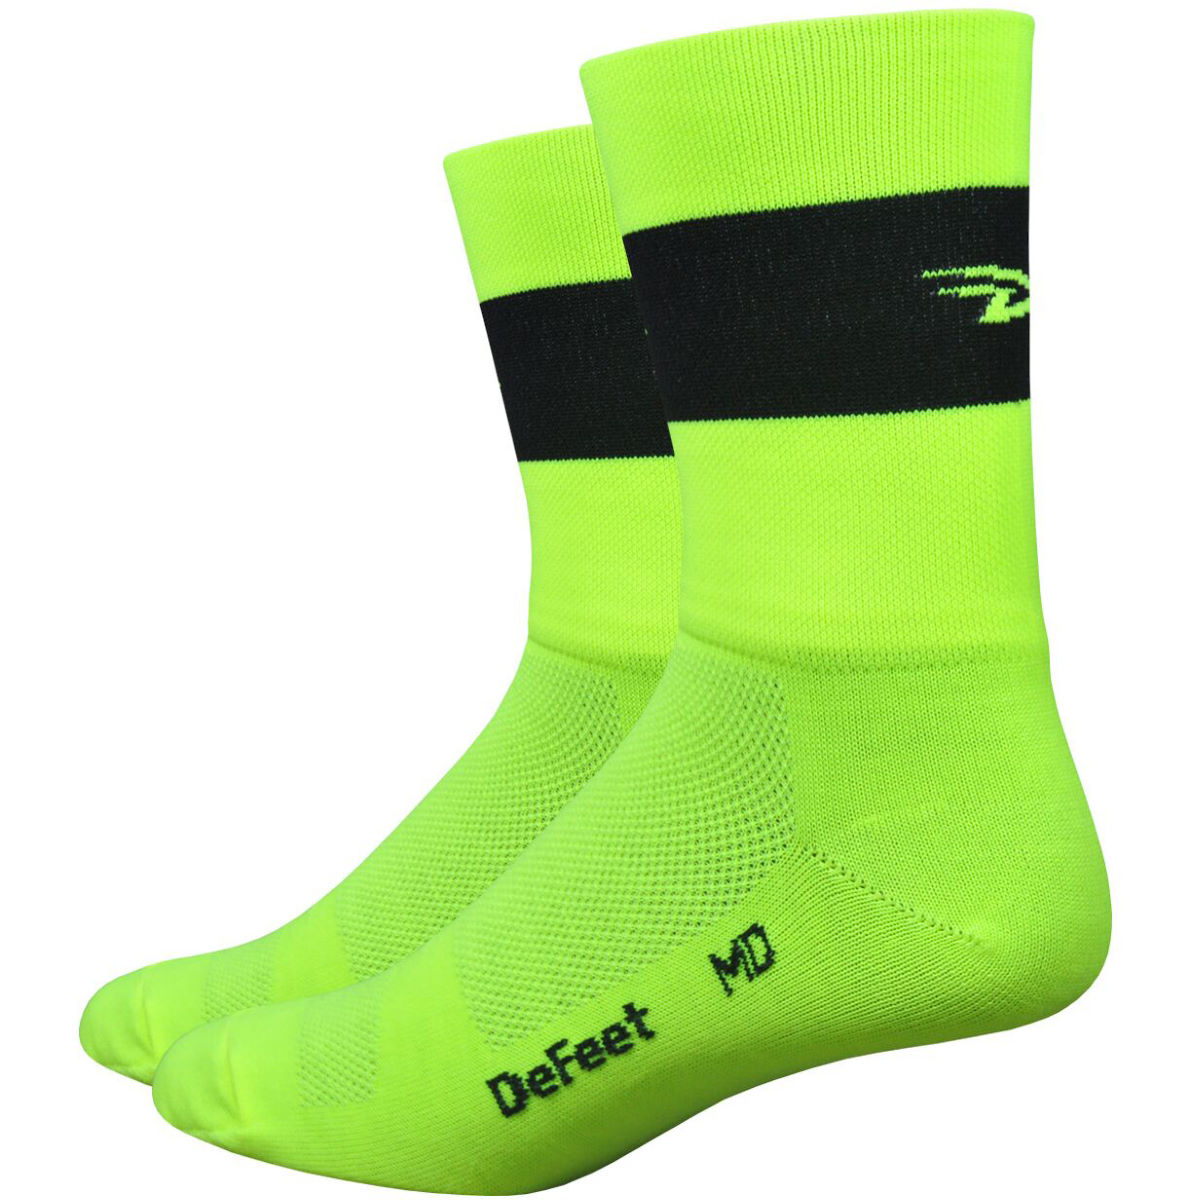 "DeFeet DeFeet Aireator 5"" Team DeFeet Hi-Vis Socks   Socks"